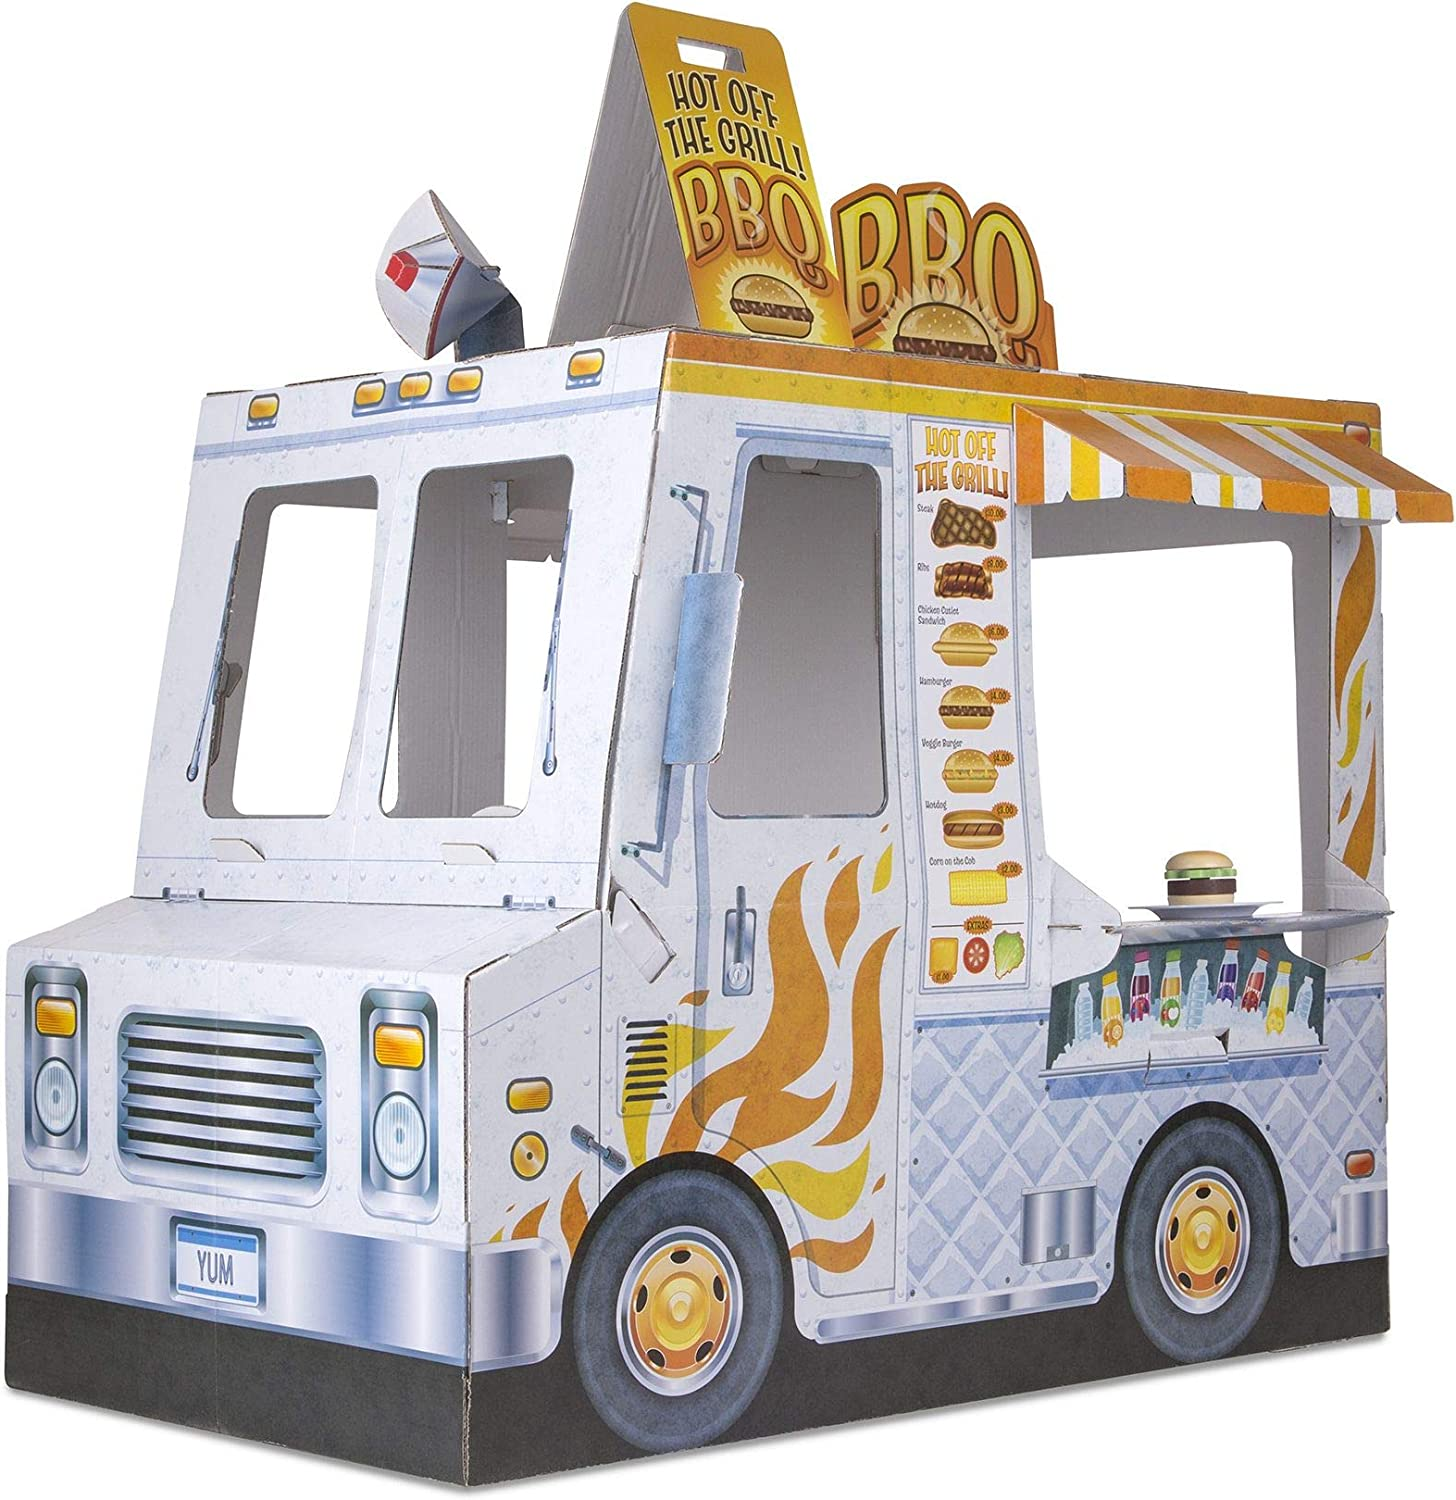 Melissa Doug Food Truck Indoor Playhouse Corrugate Ice Cream And Barbecue Truck Nearly 4 Feet Long Great Gift For Girls And Boys Best For 3 4